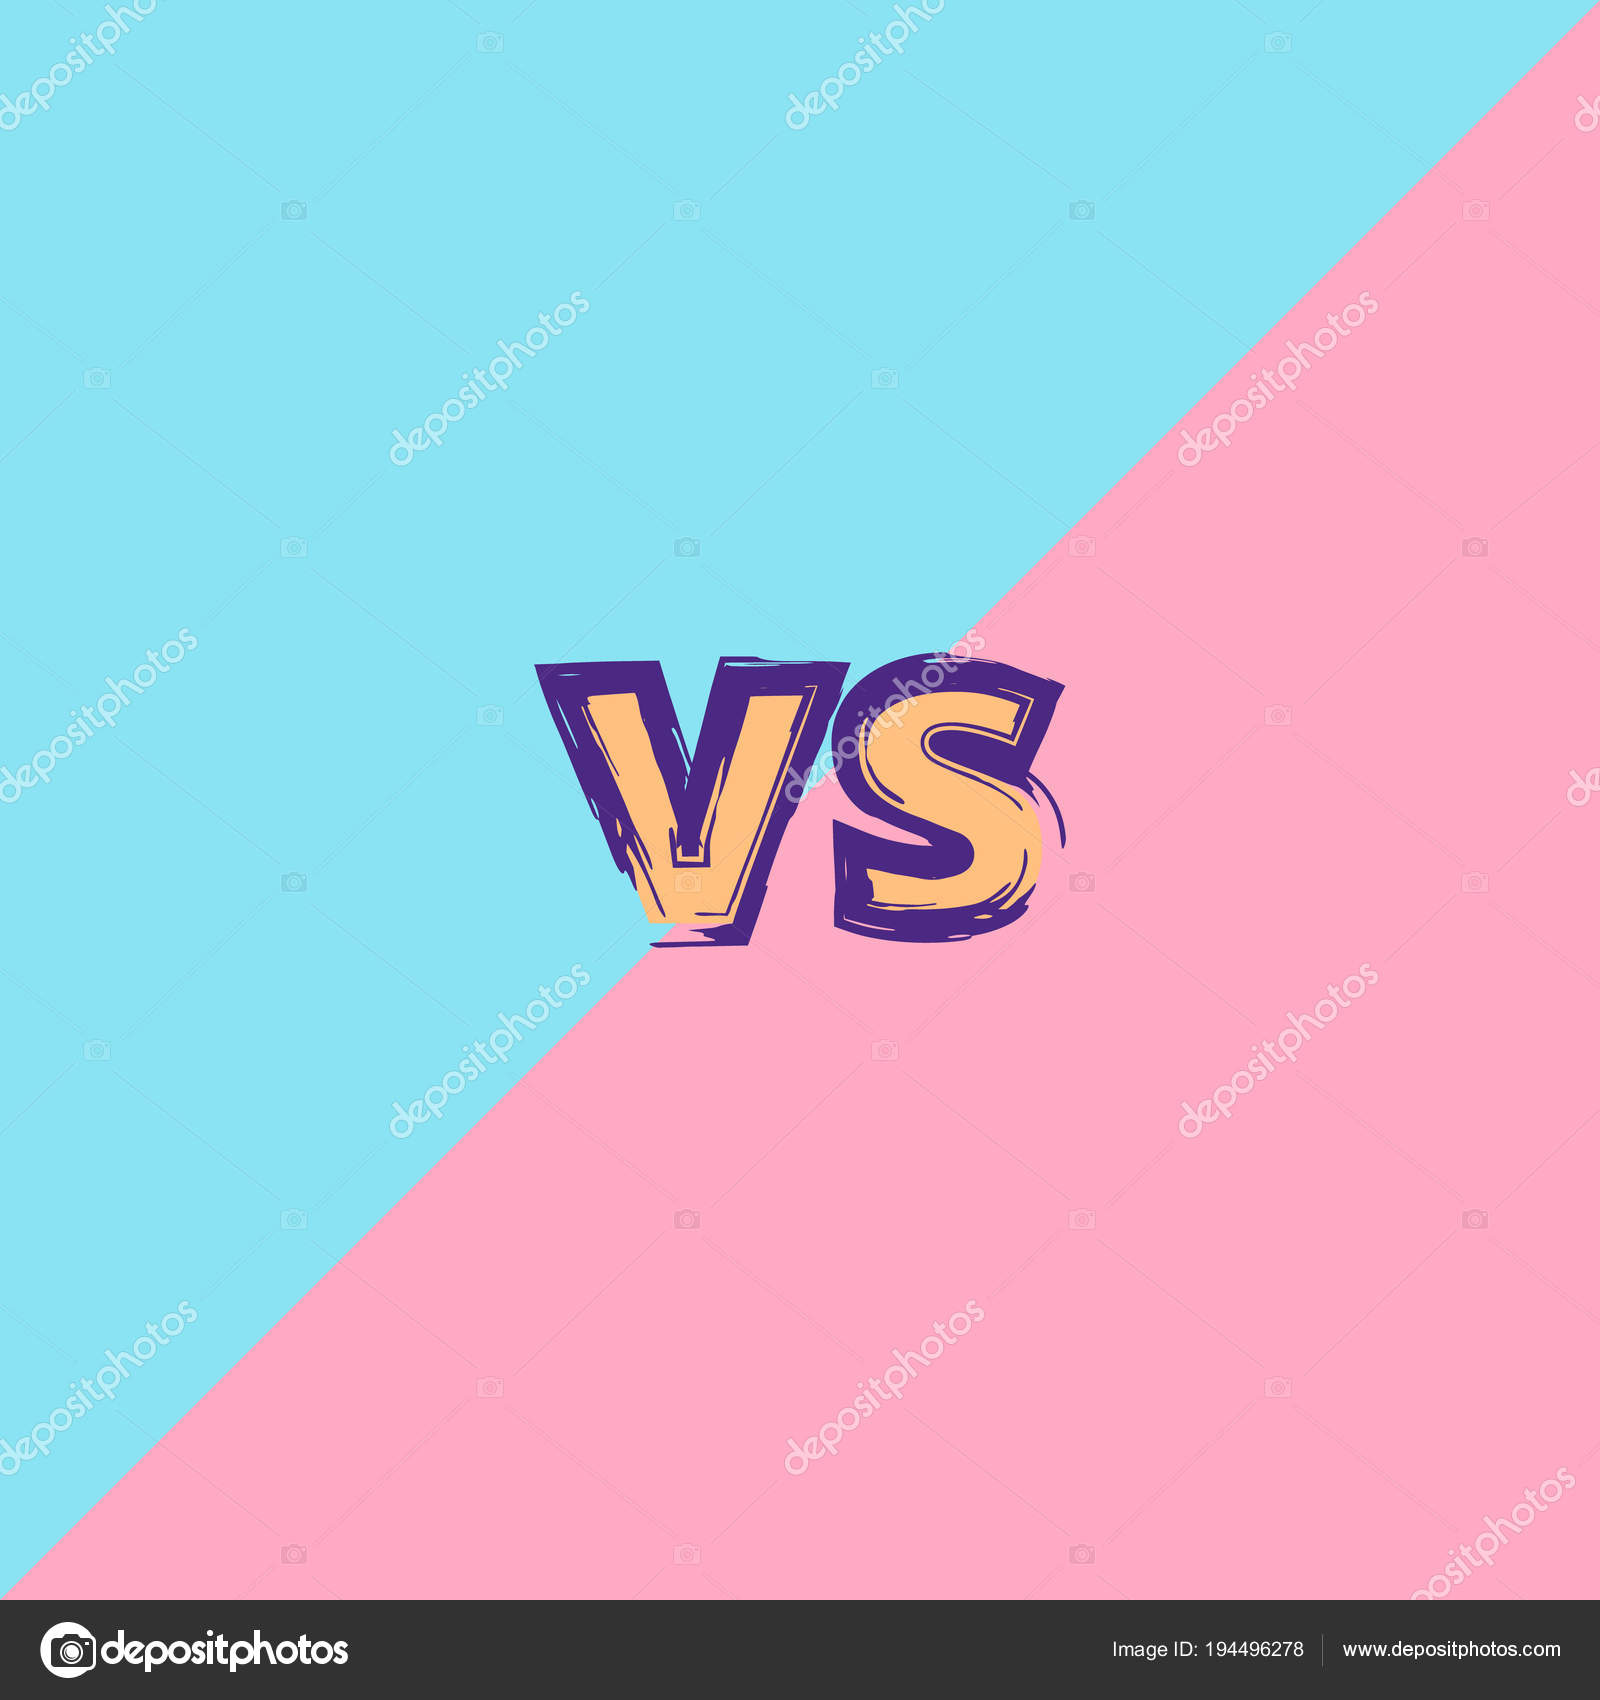 / Vs Vs Banner Versus Screen Stock Vector Syuzannam 194496278